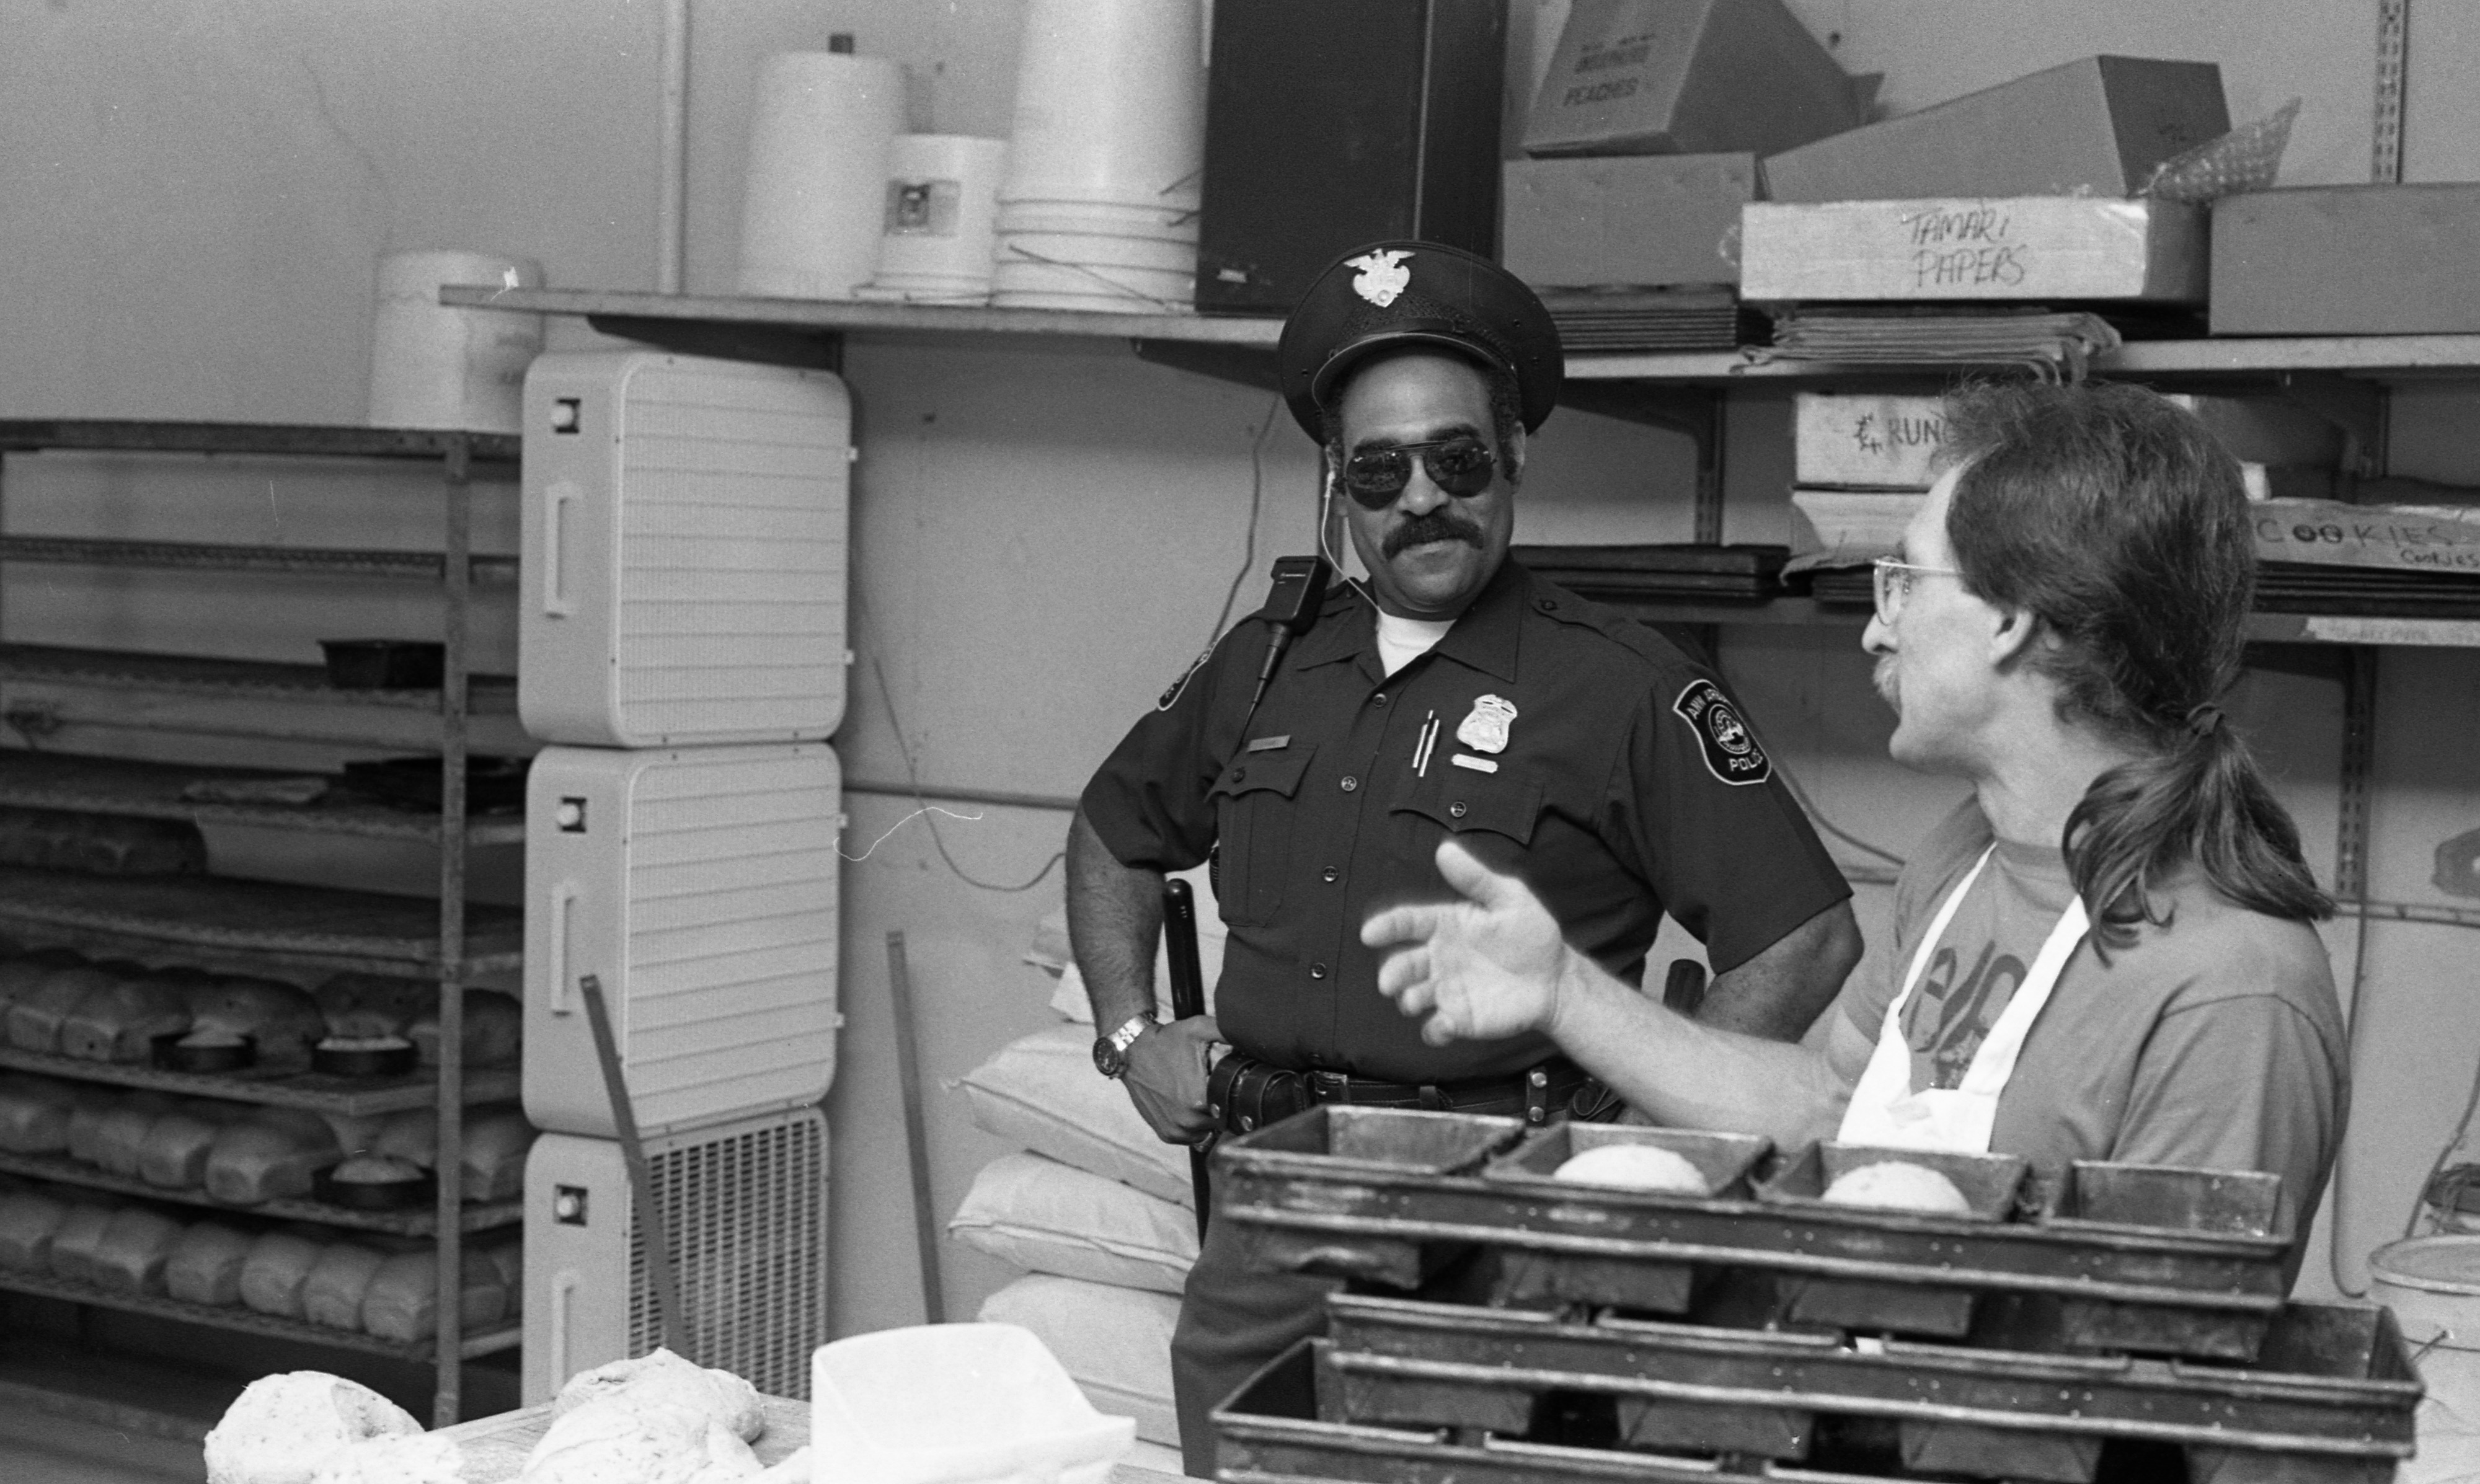 Ann Arbor Police Officer Richard Blake Talks With Tom Kenney of Wildflower Bakery, July 1988 image